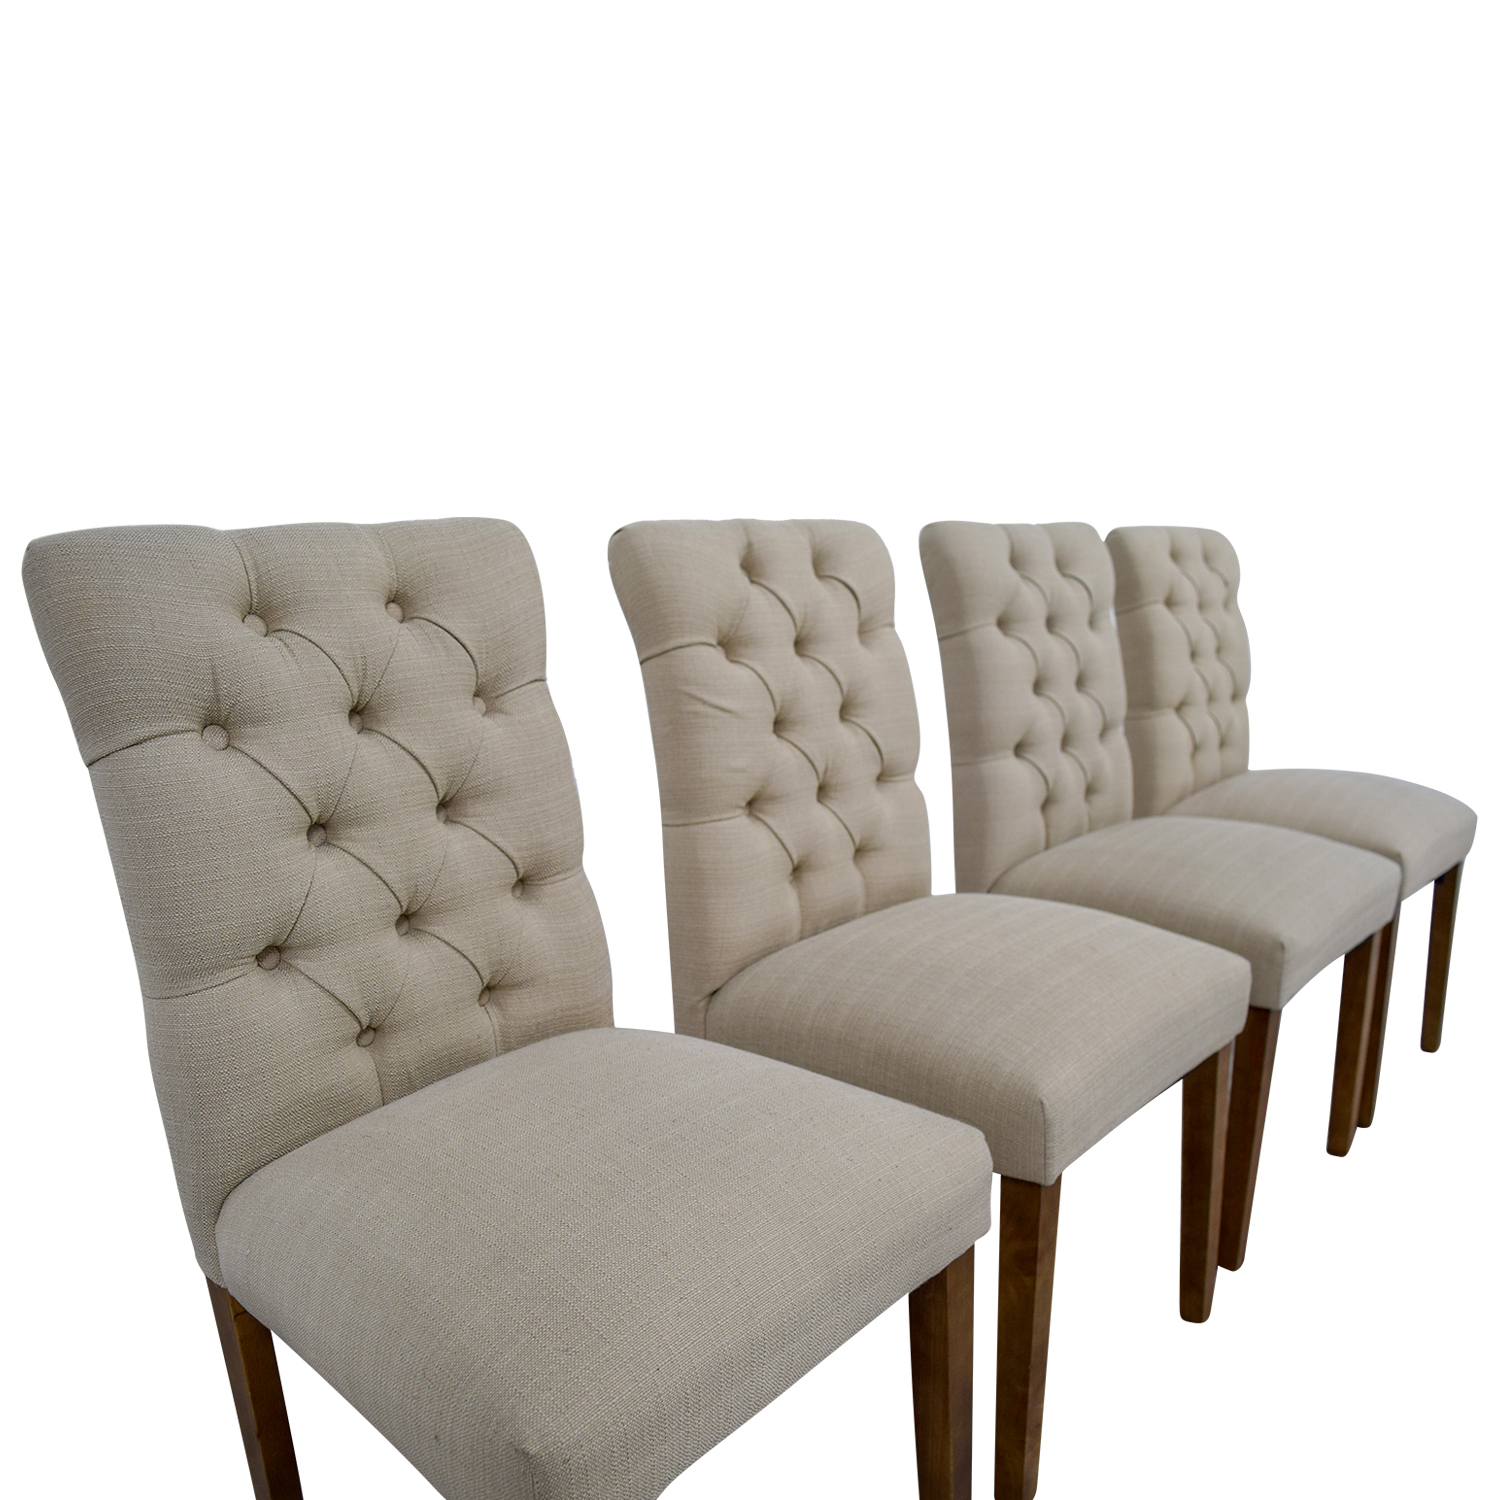 Genial ... Buy Target Target Brookline Threshold Tan Tufted Dining Chairs Online  ...